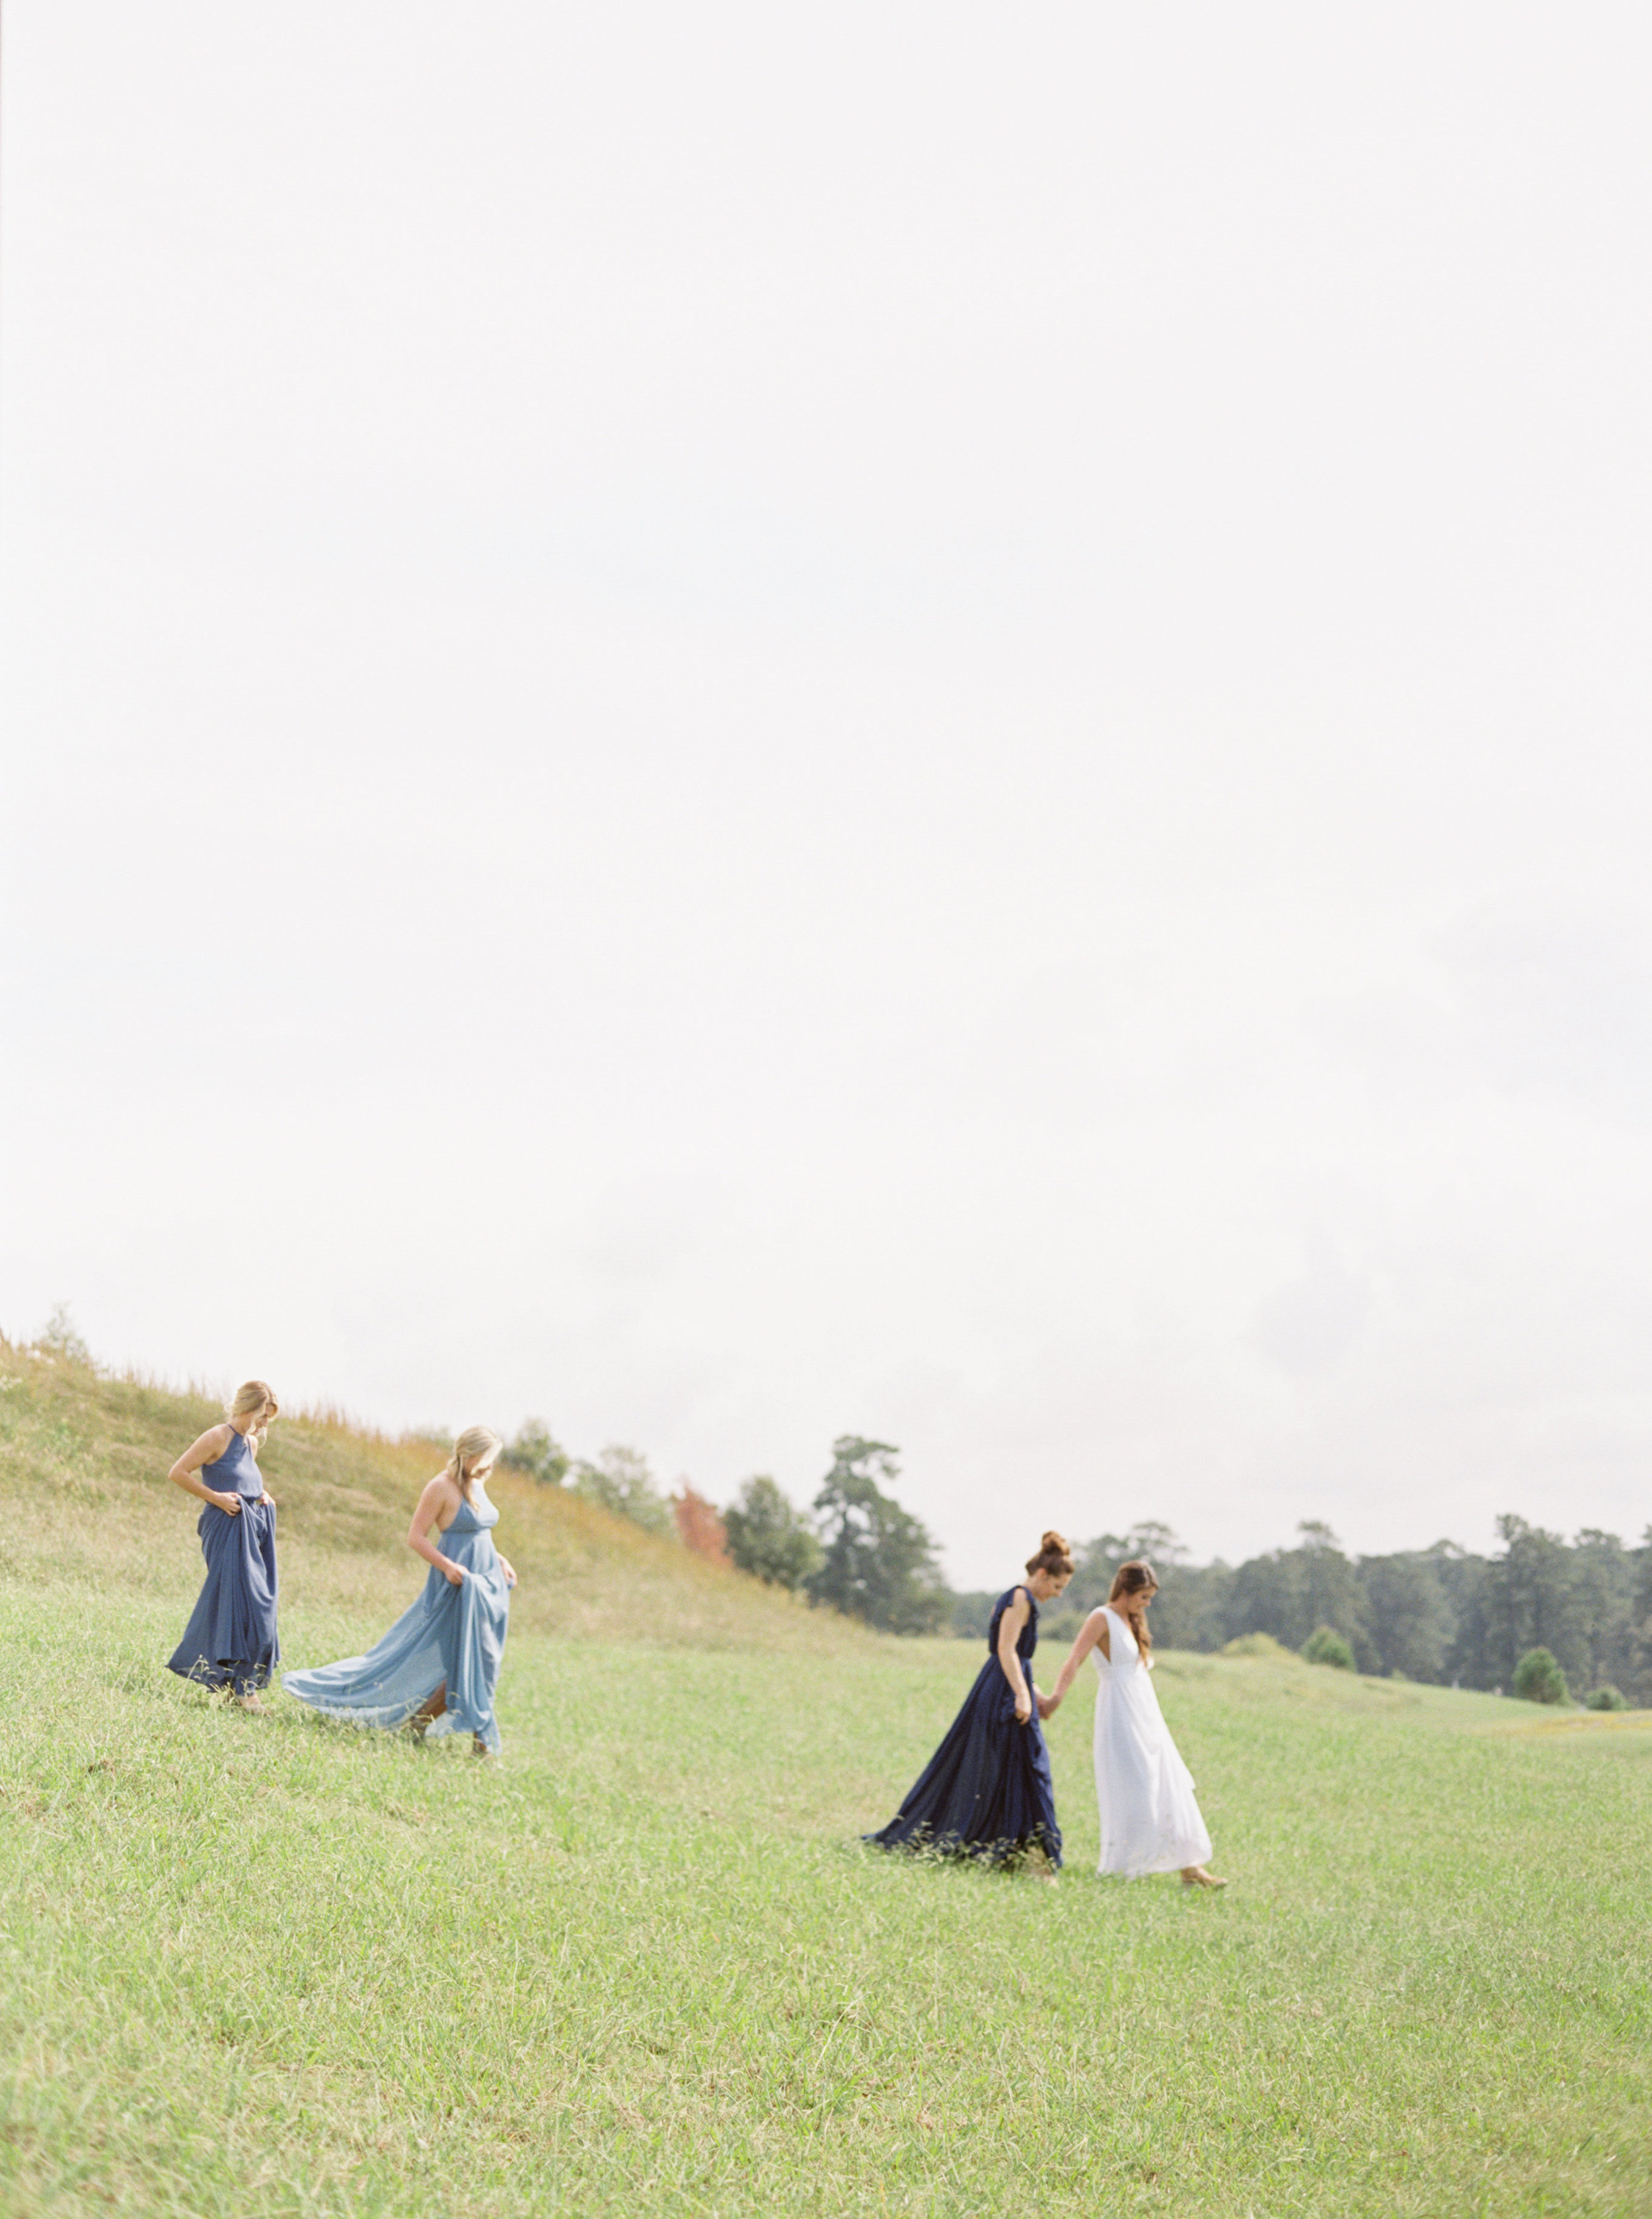 bride and bridesmaids, bridesmaid dress  inspiration, Alabama wedding photographer, film wedding photographer, birmingham wedding photographer, fine art wedding photographer, la belle vie events, meghan murphy photography,